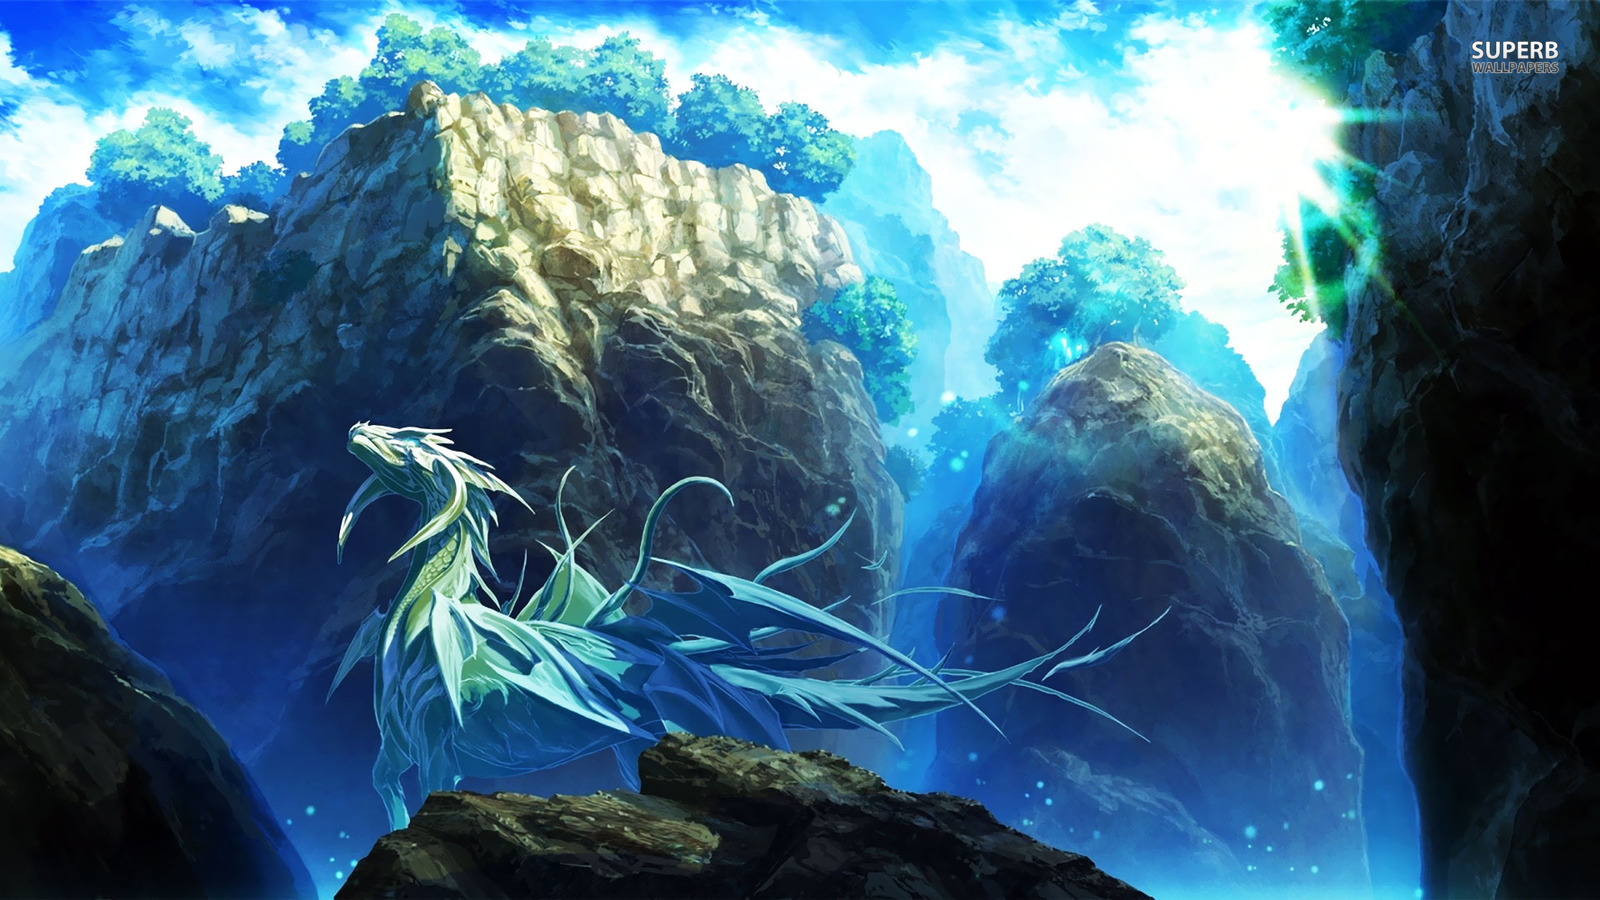 dragons images ice dragon hd wallpaper and background photos 38740651